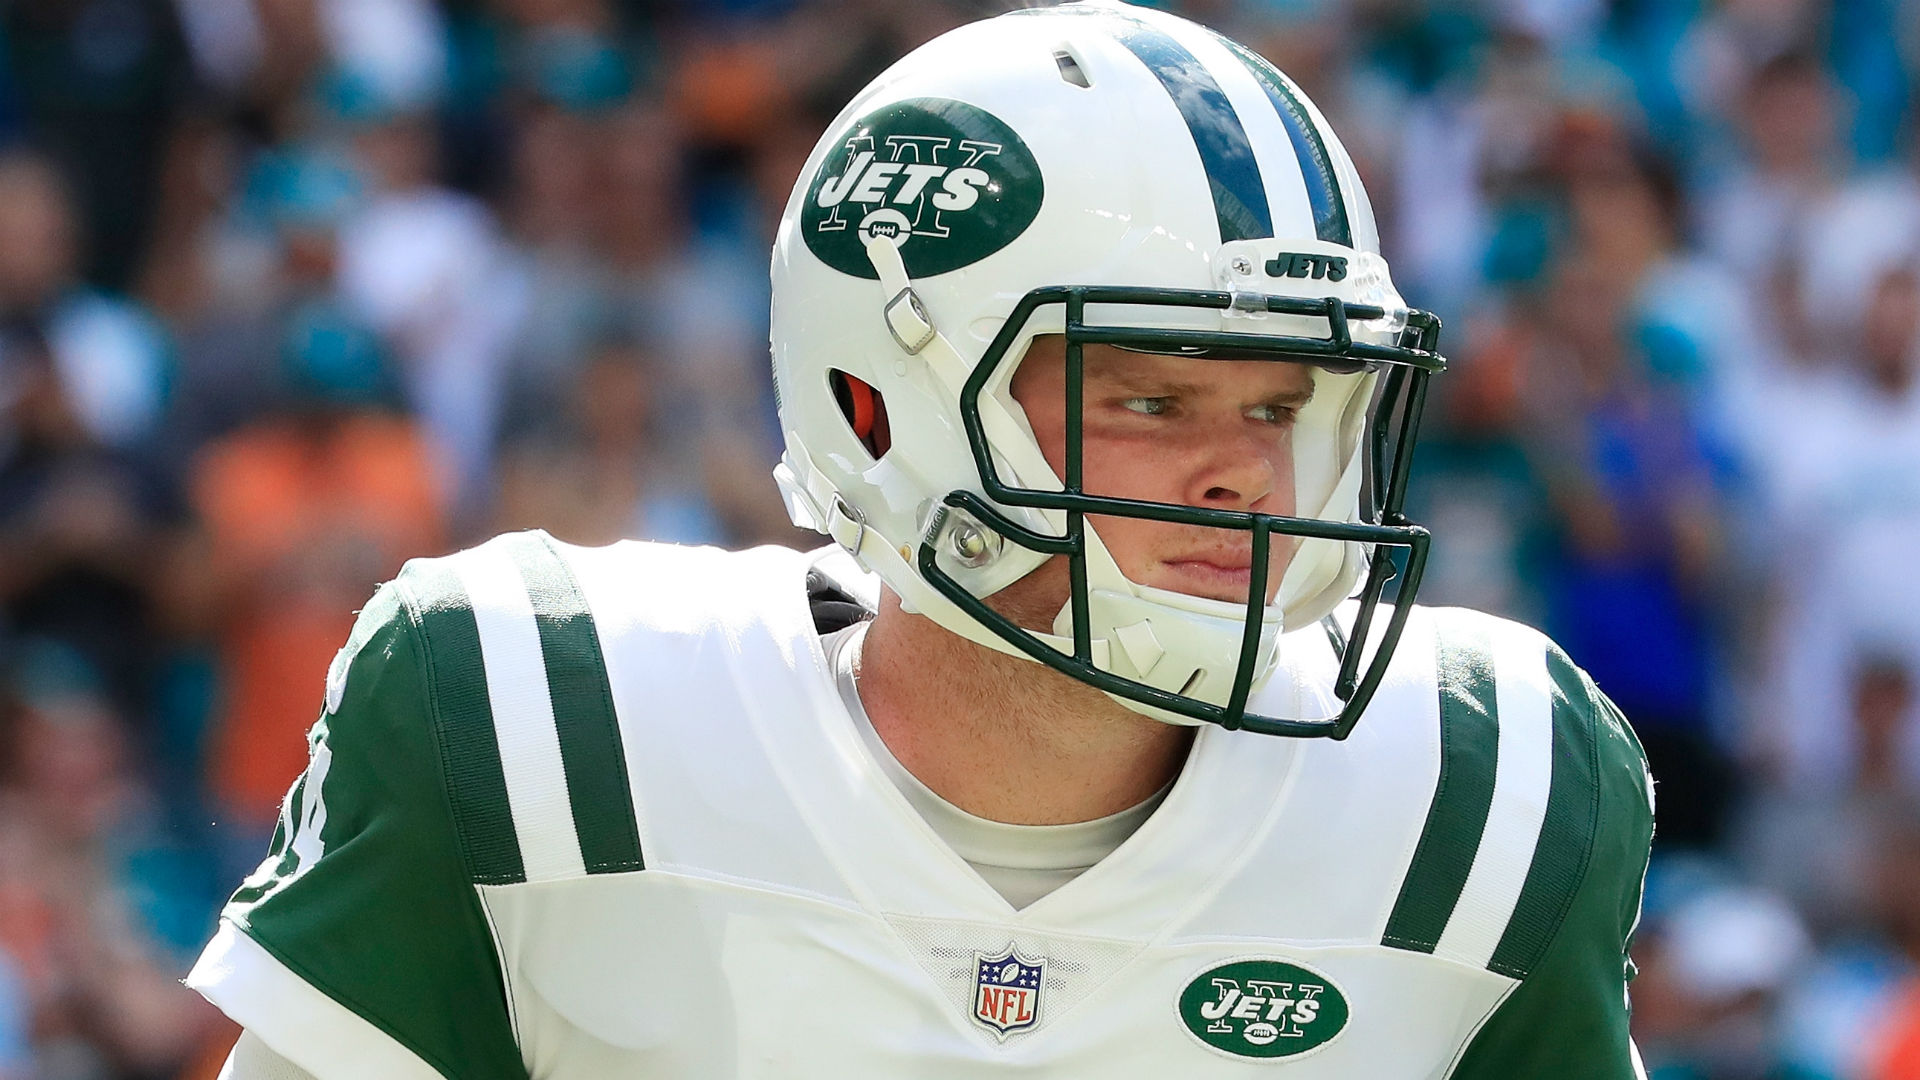 Jets QB Sam Darnold out for Week 10 action due to significant sprain, report says